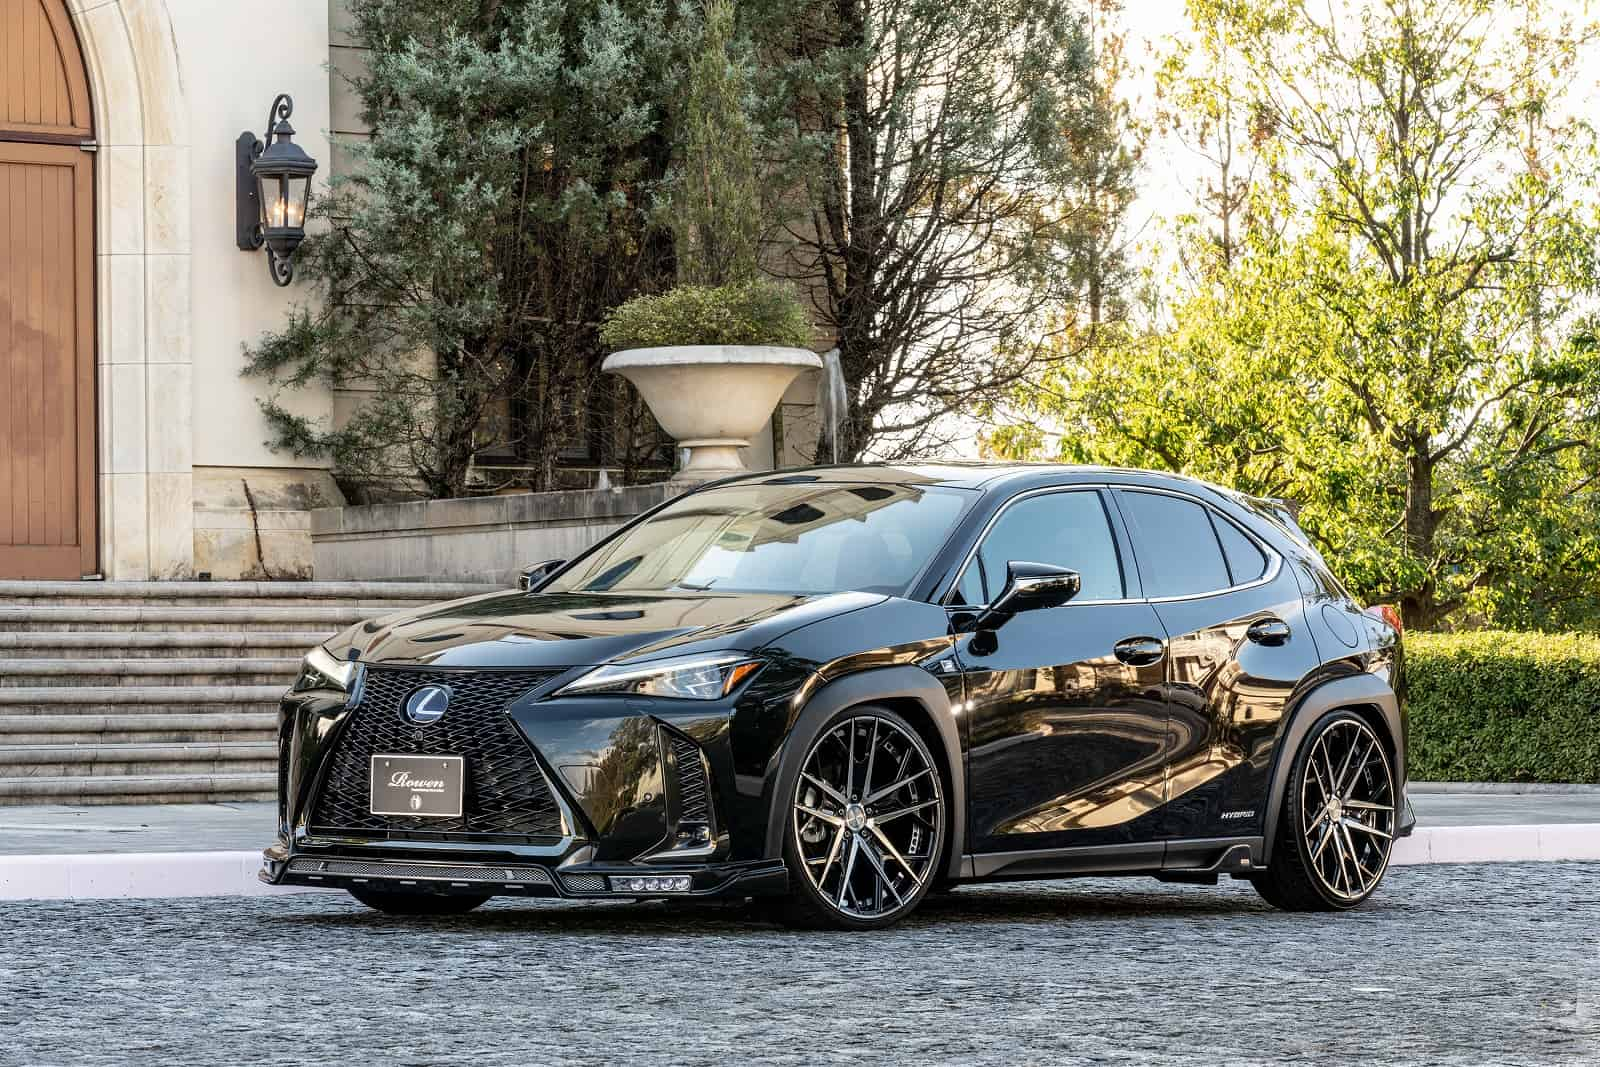 LEXUS UX F-SPORT Body kit by ROWEN